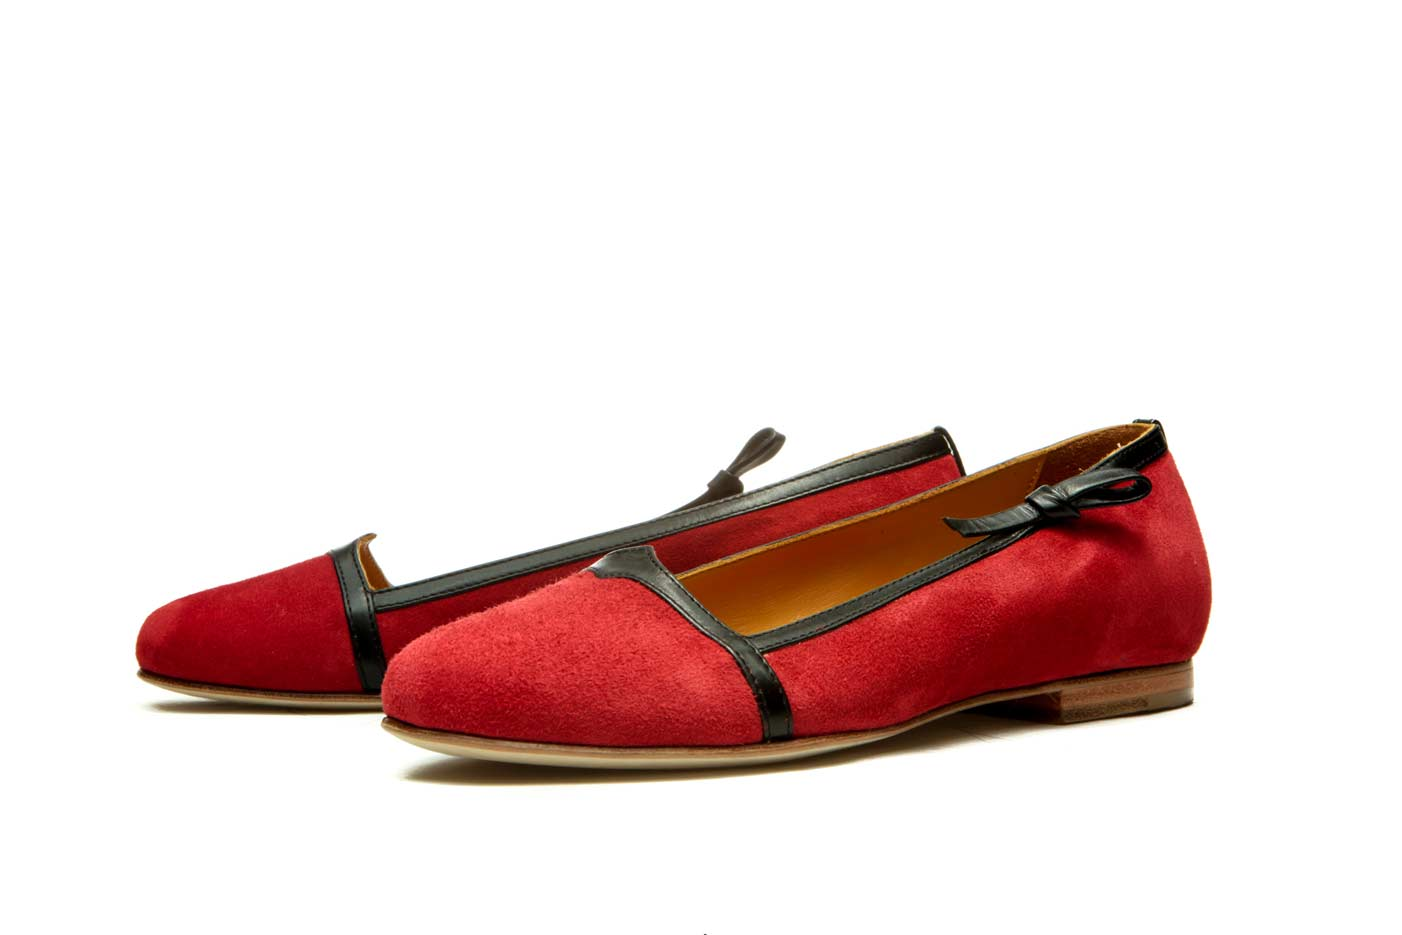 Red ballet pumps | Knot bow flats